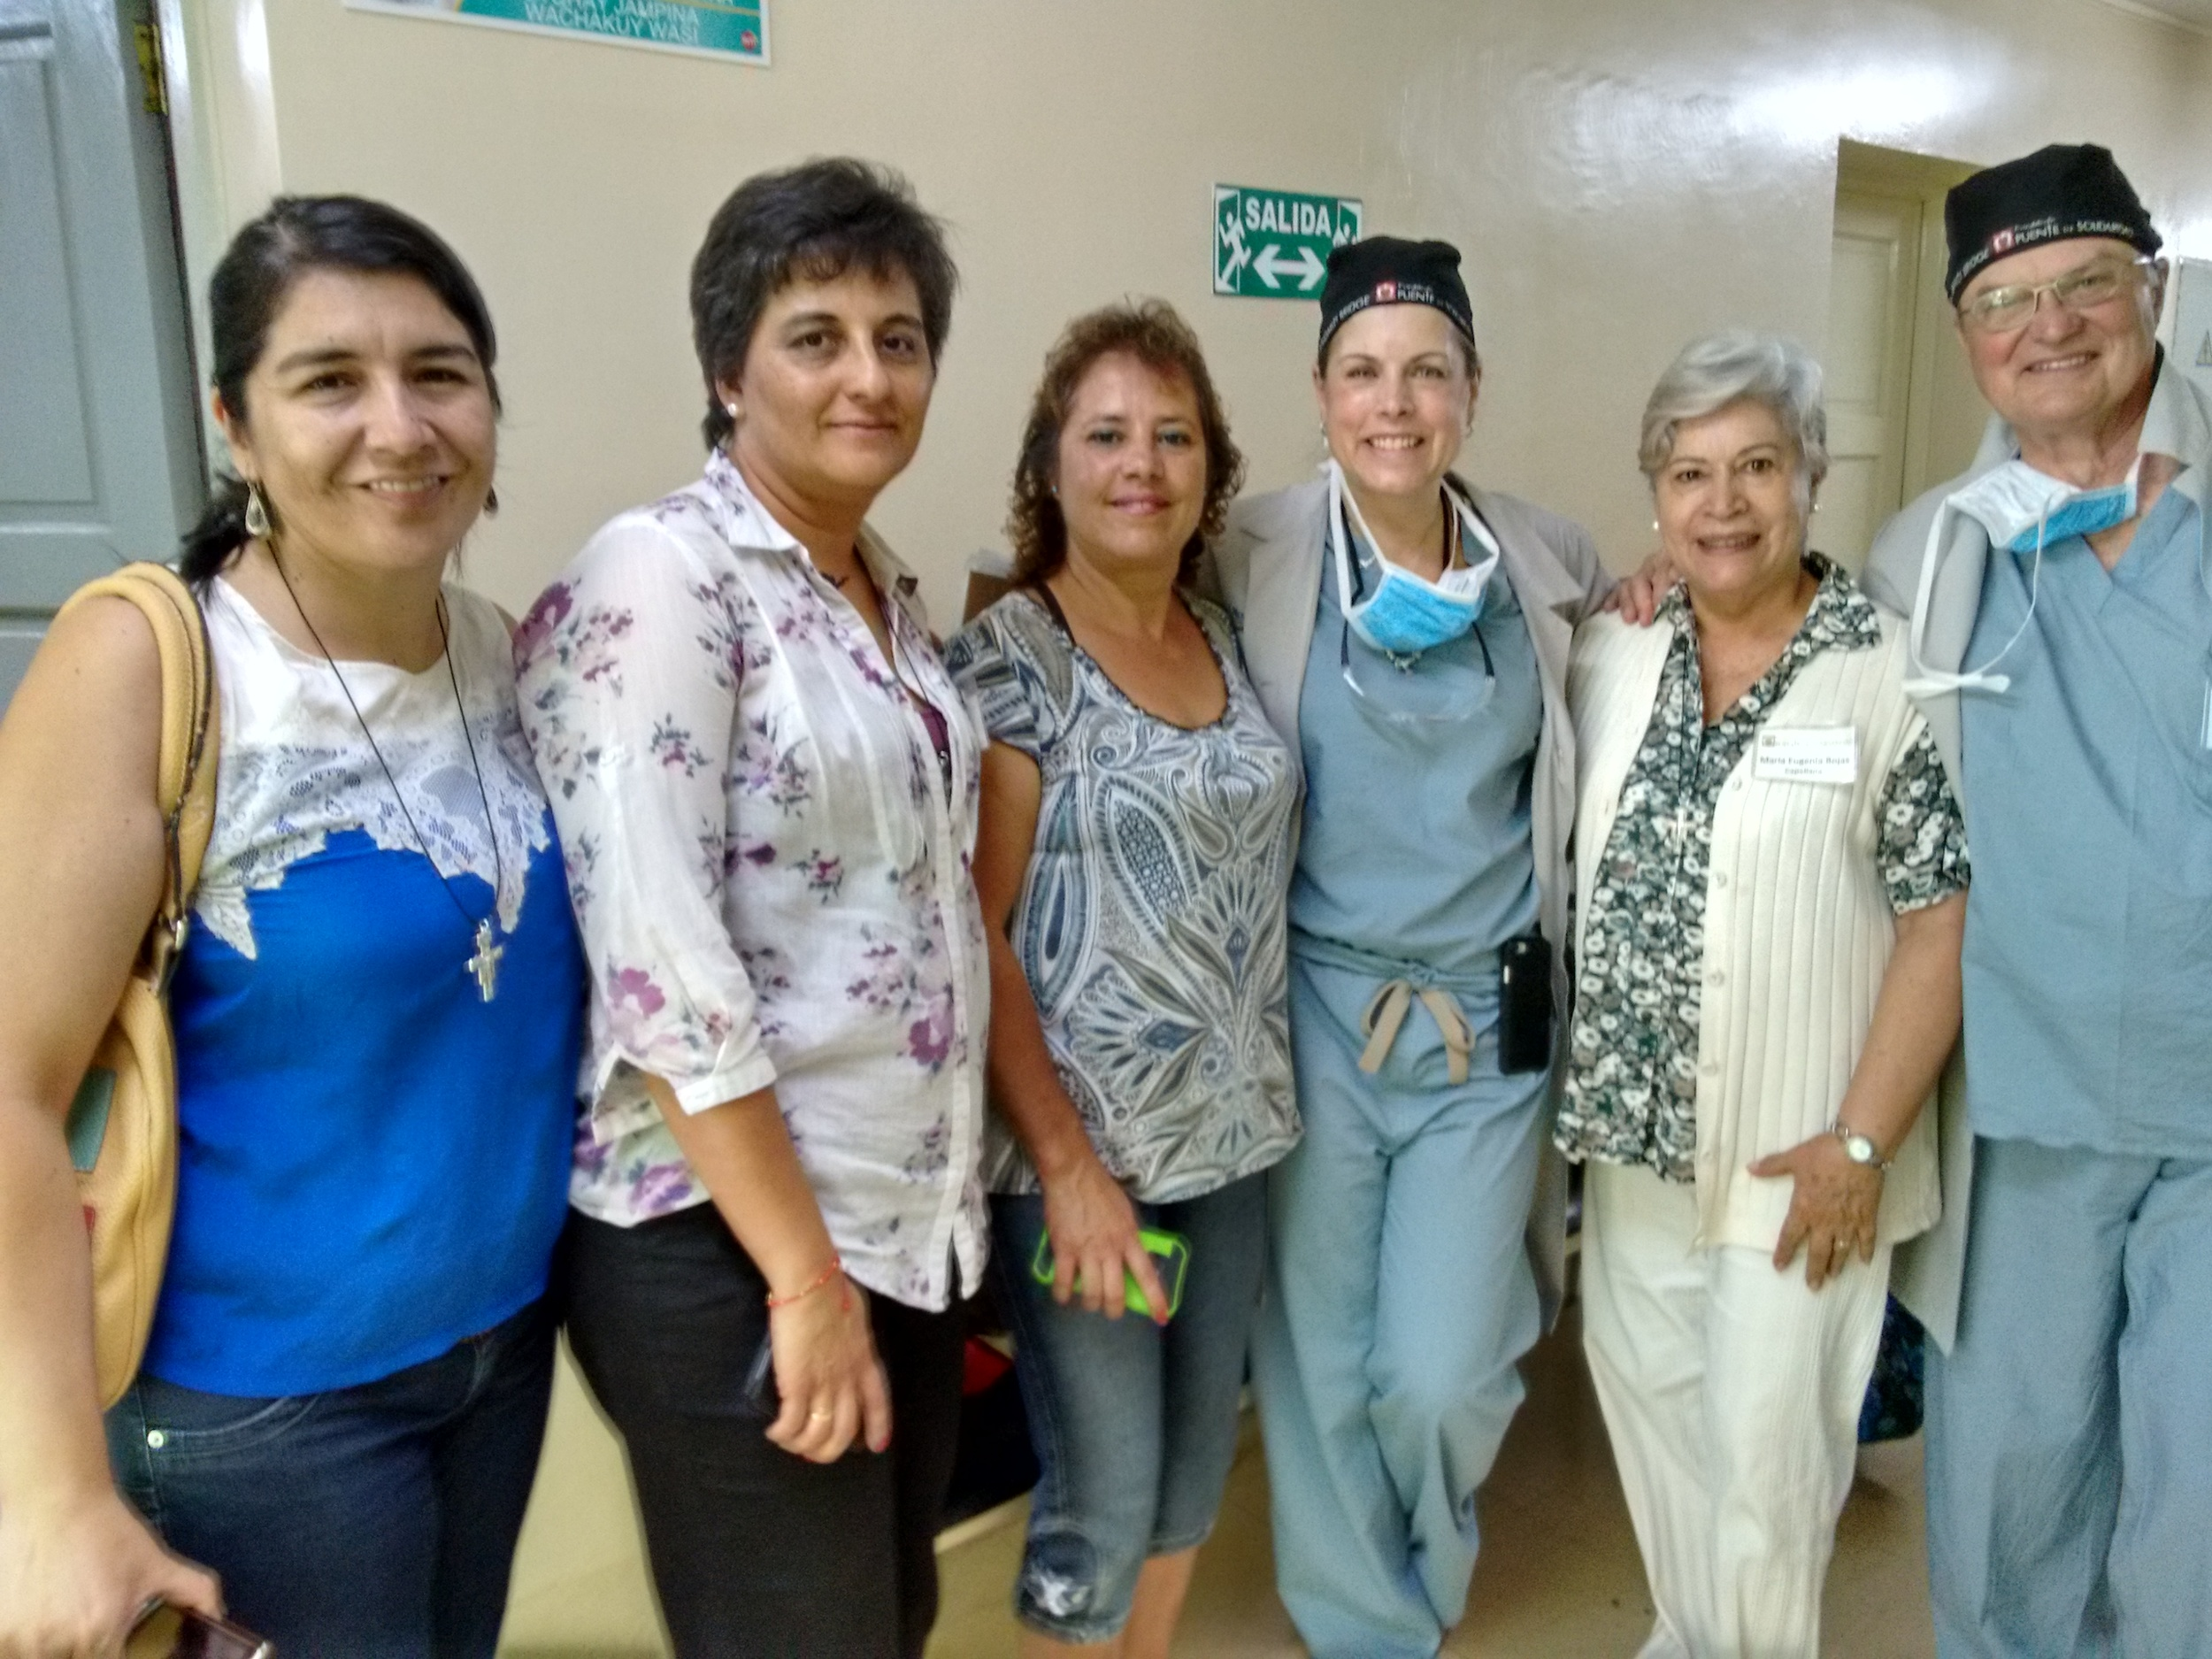 Marcela Canedo (Mission Identity and Outreach Coordinator of Puente de Solidaridad), Patricia Vargas (ED of Puente de Solidaridad), former mission trip patient, Janet Tomezsko, MD, Maria Eugenia Rojas and Ron Miller, MD.